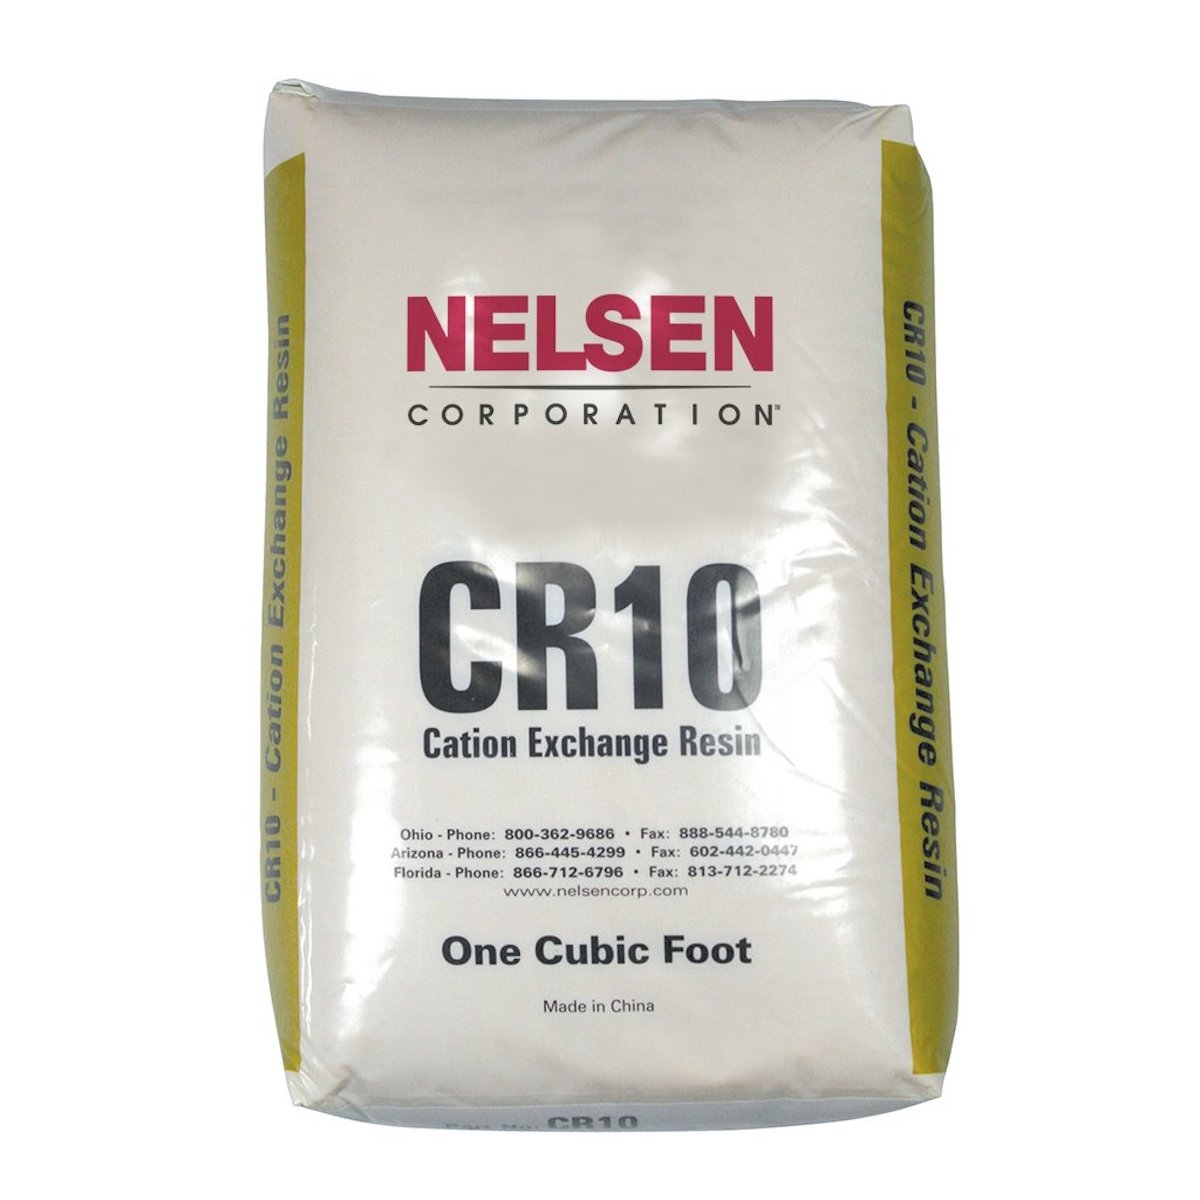 Cation Resin 10 Gold 1 Cubic Foot Bag